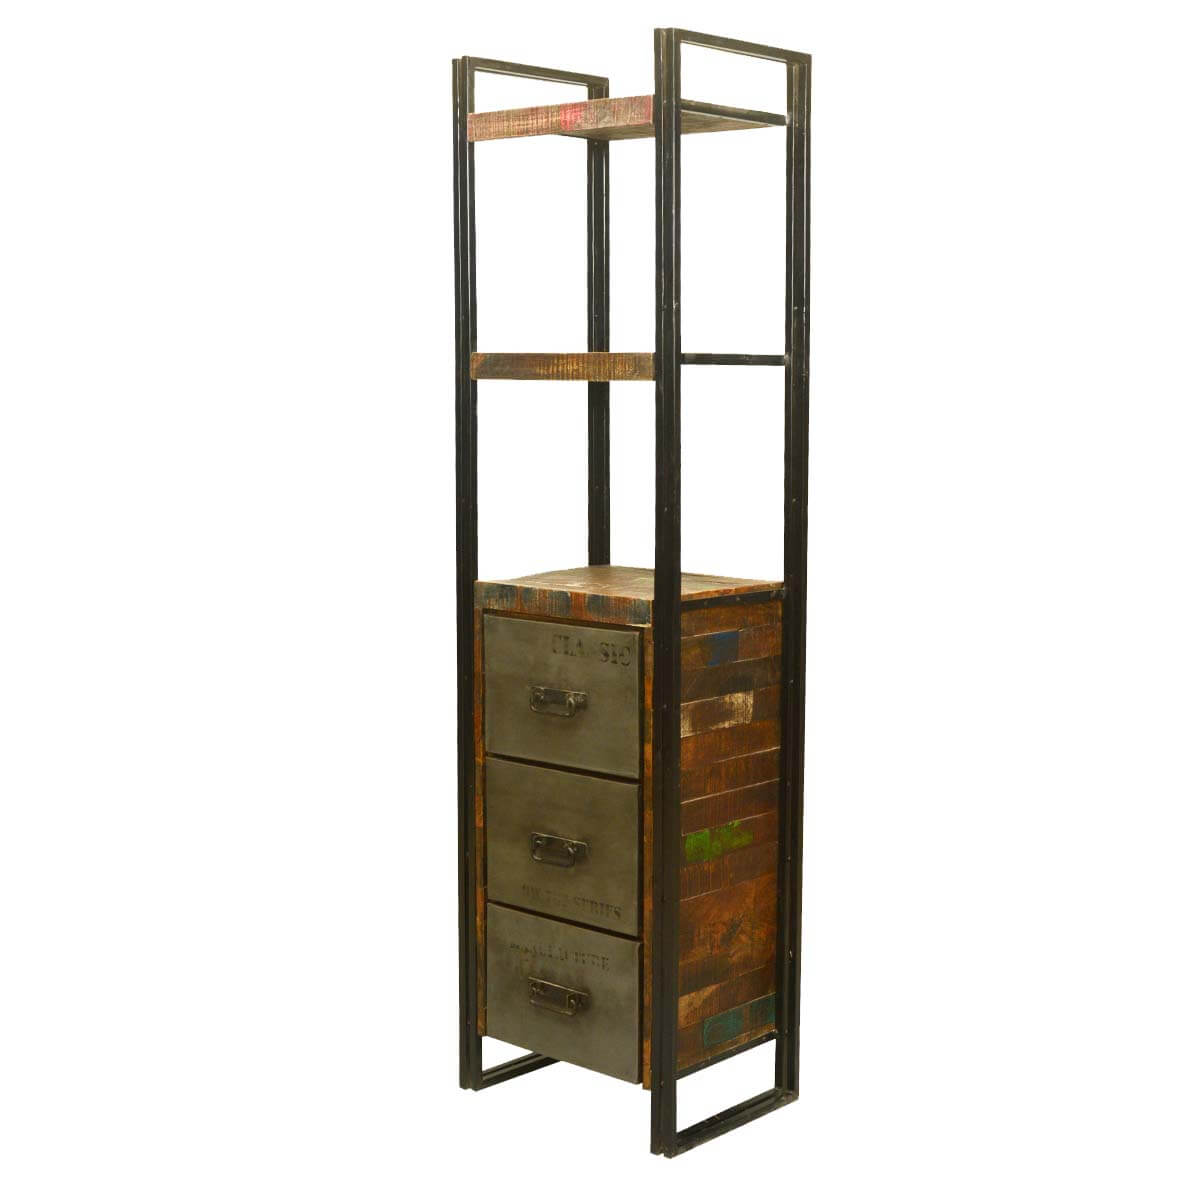 Rustic Industrial Reclaimed Wood & Iron Display Cabinet with Drawers